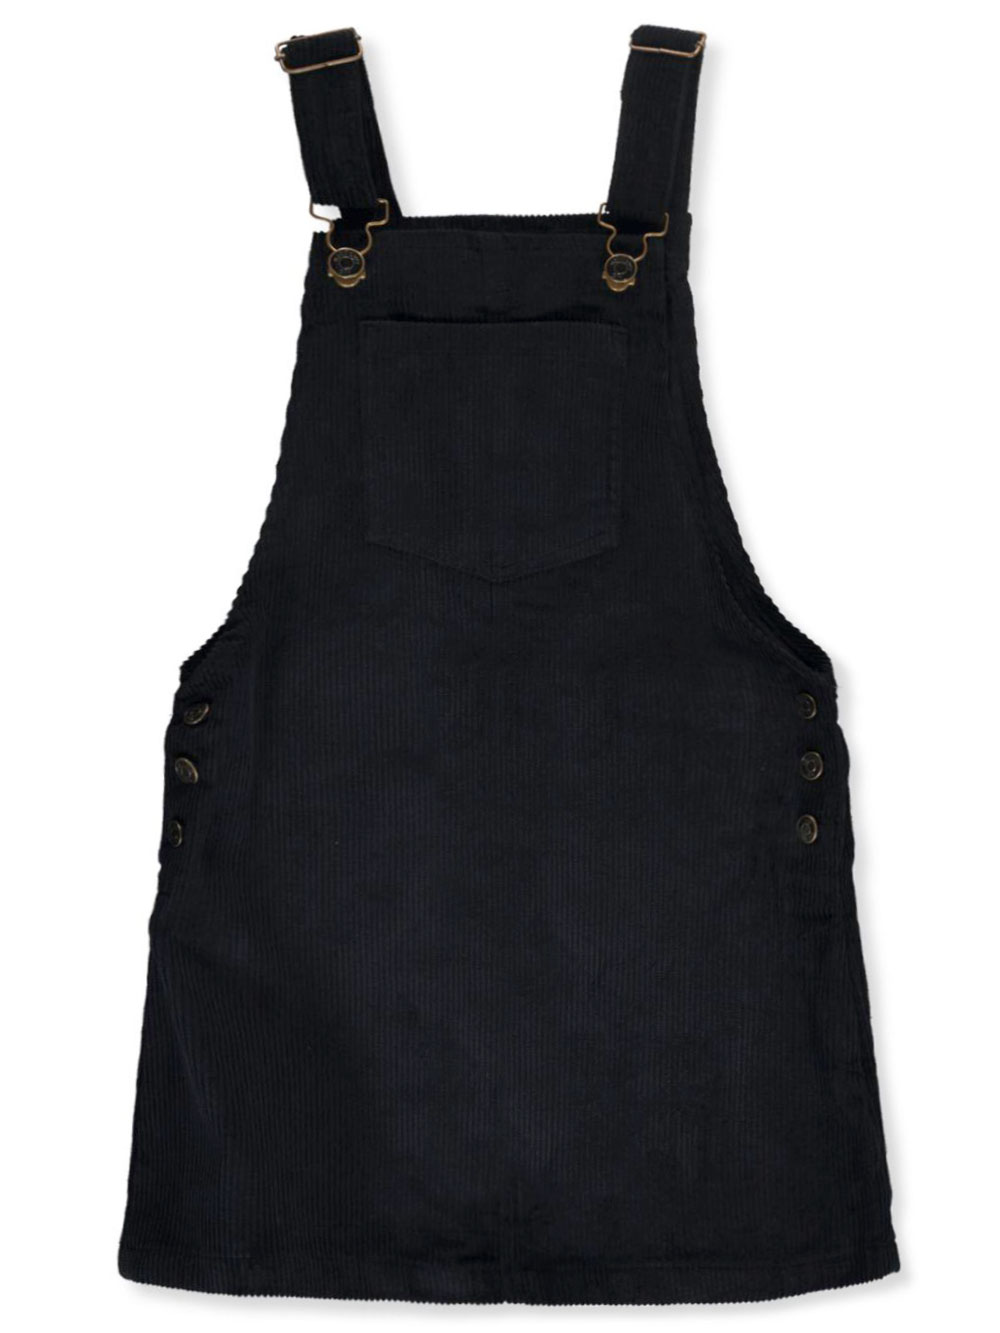 Overalls and Jumpers Corduroy Skirtalls